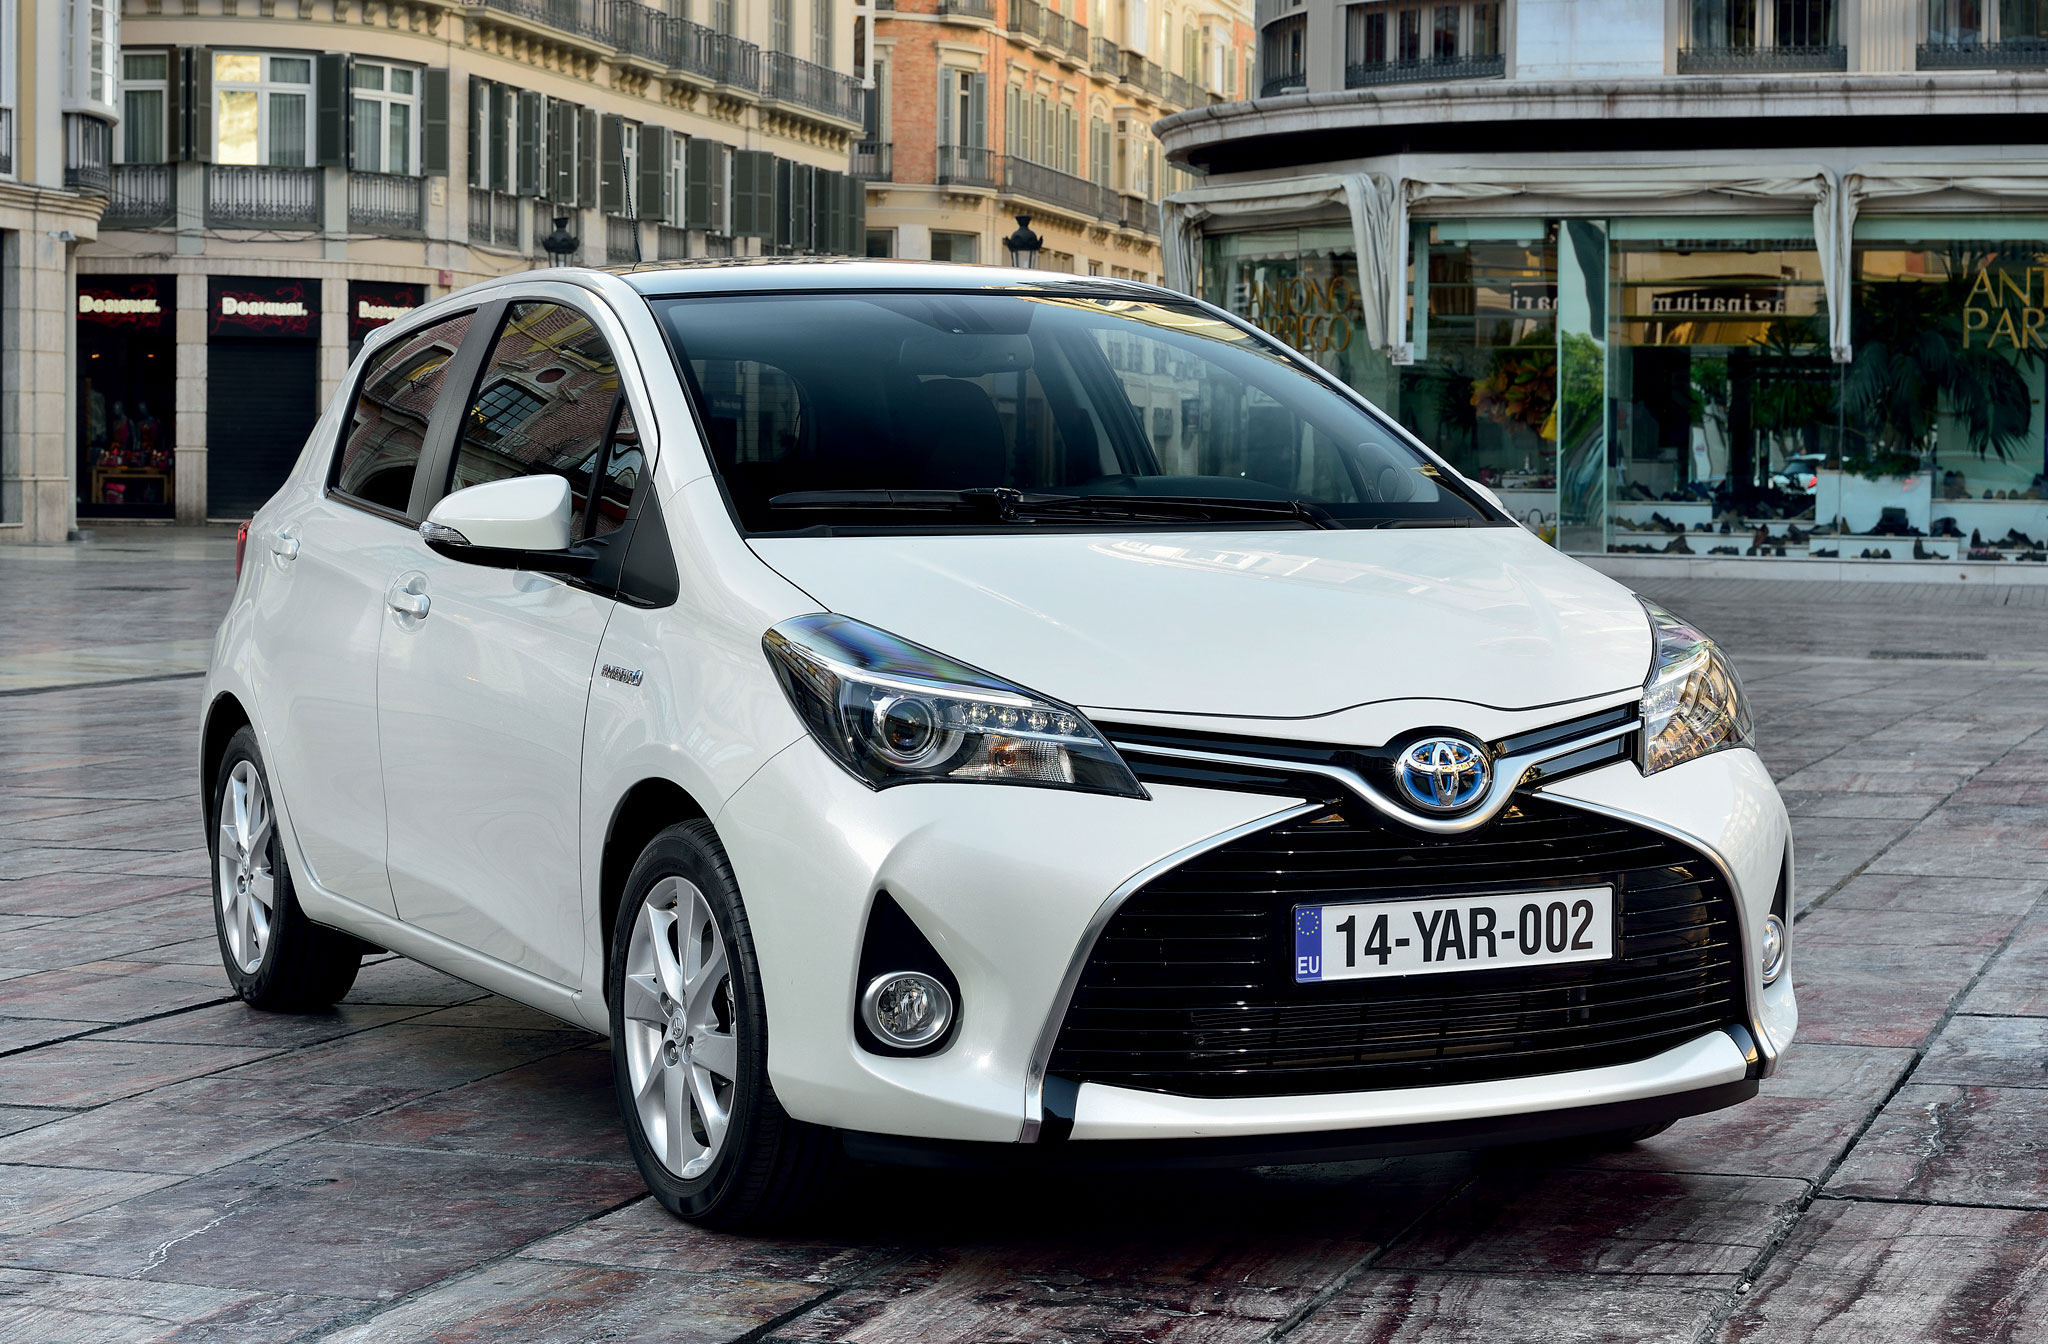 test but story better se cars lags drive money toyota still yaris